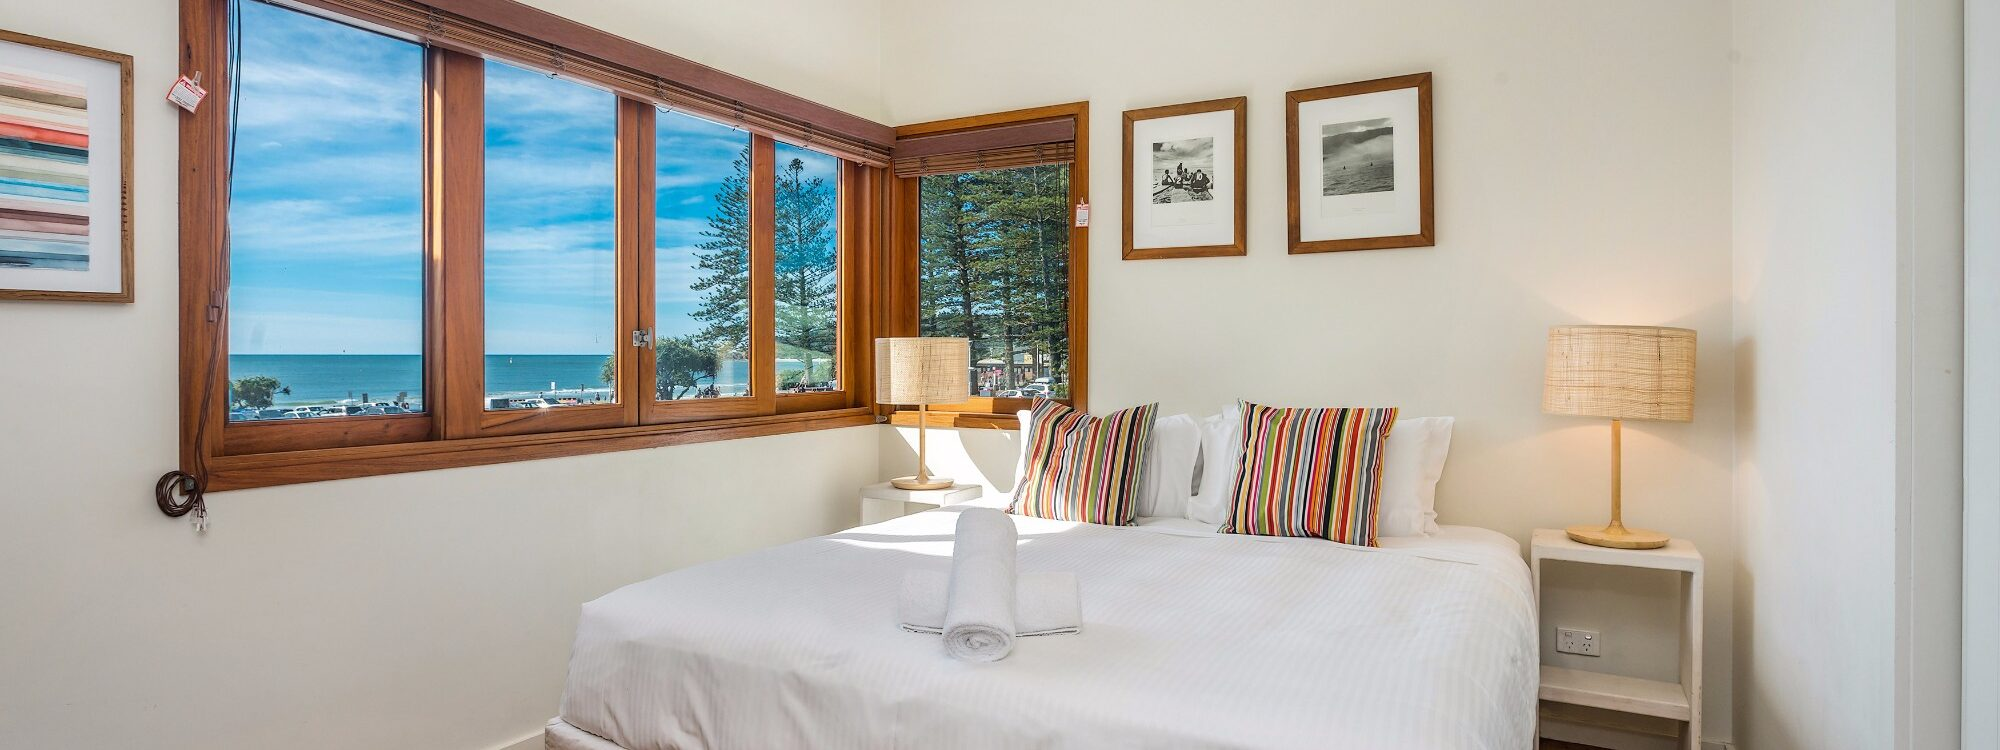 Quiksilver Apartments - The Pass - King room